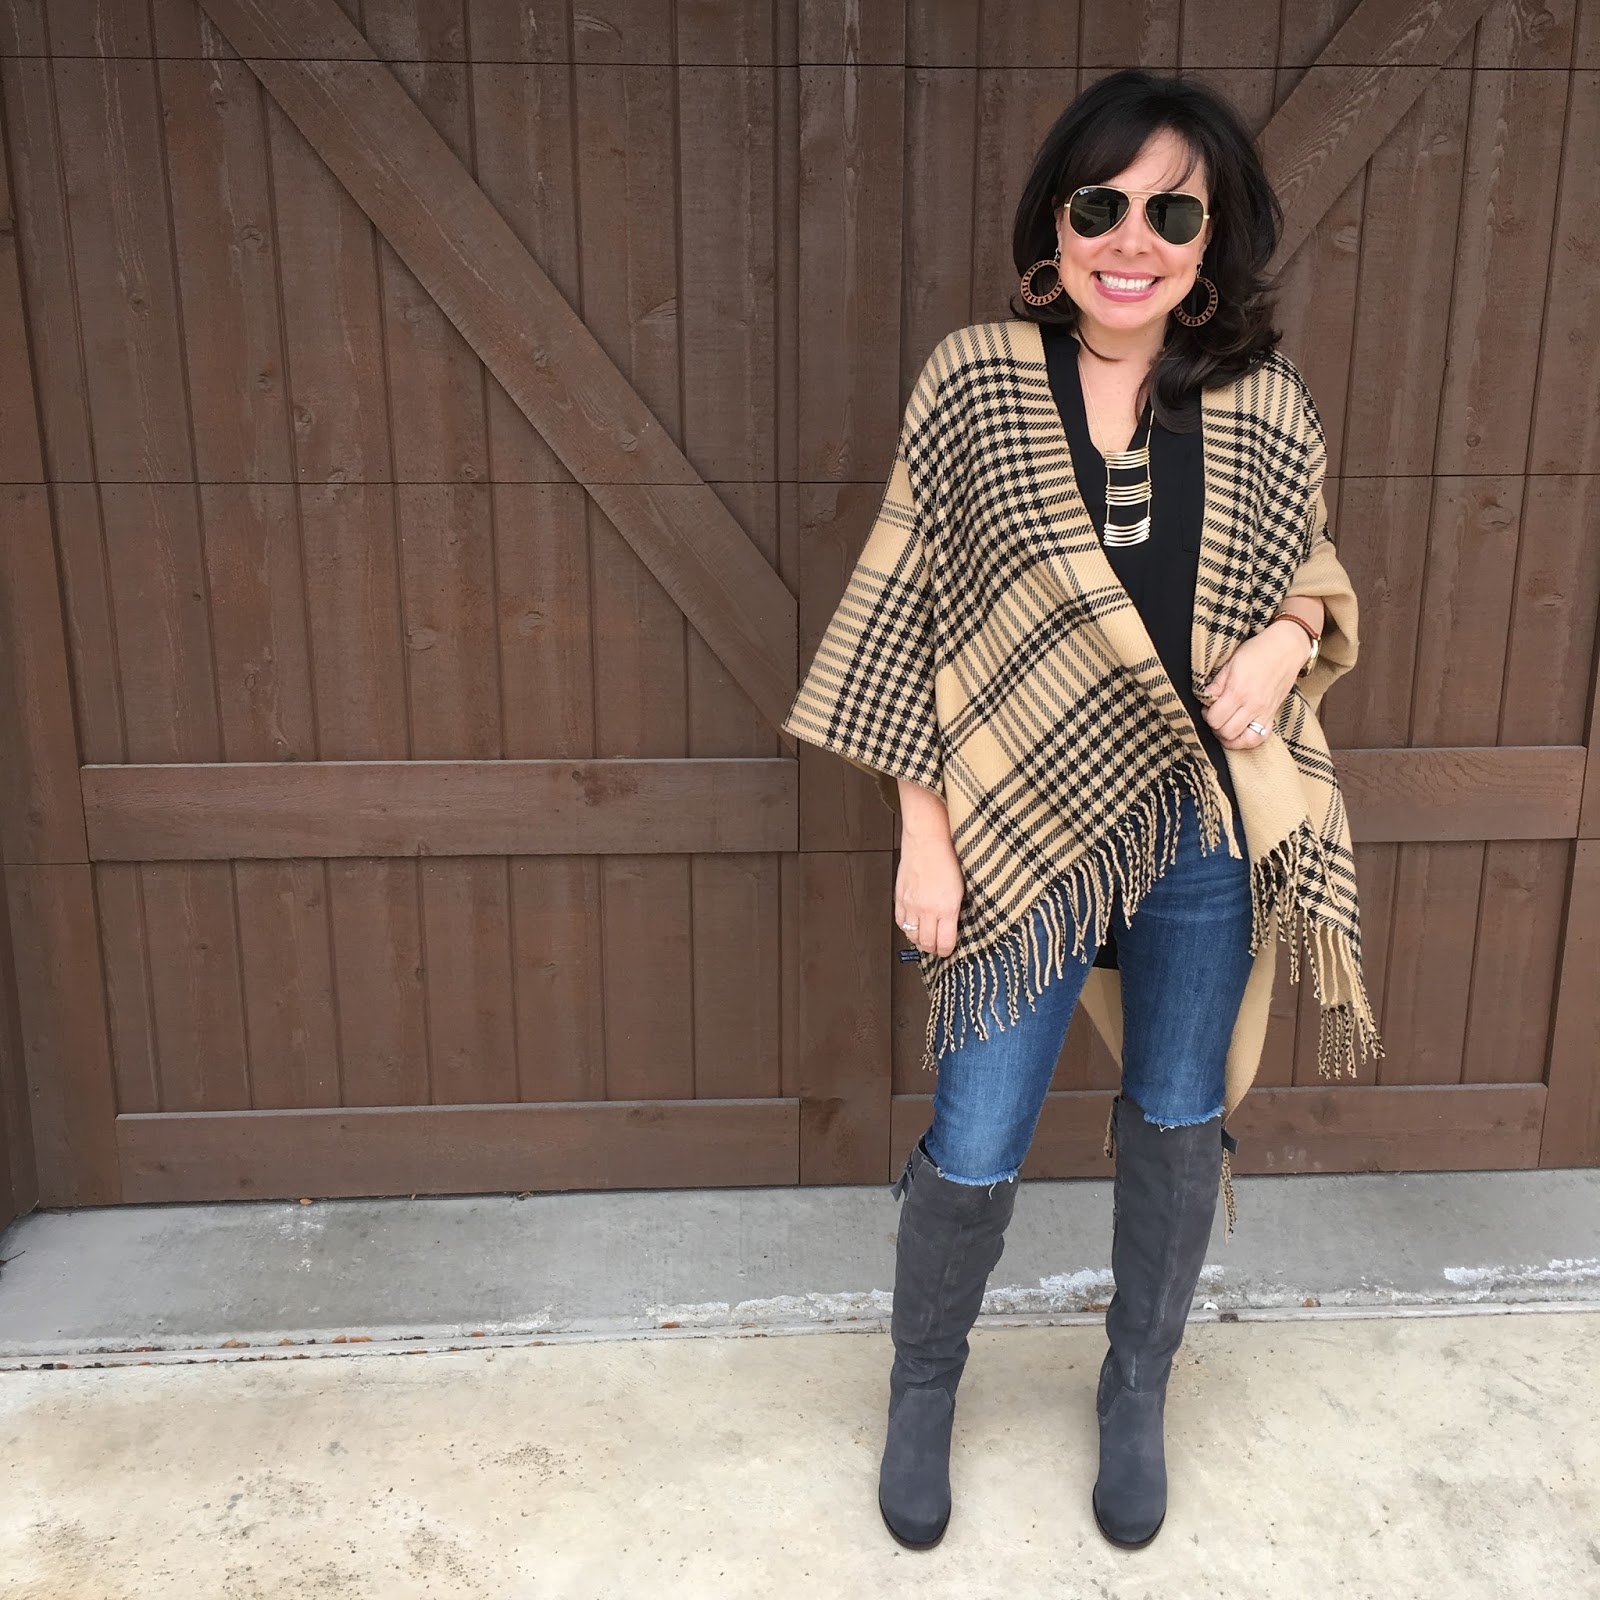 95b7a31154a A Poncho, Boots, and a Bag! — Sheaffer Told Me To